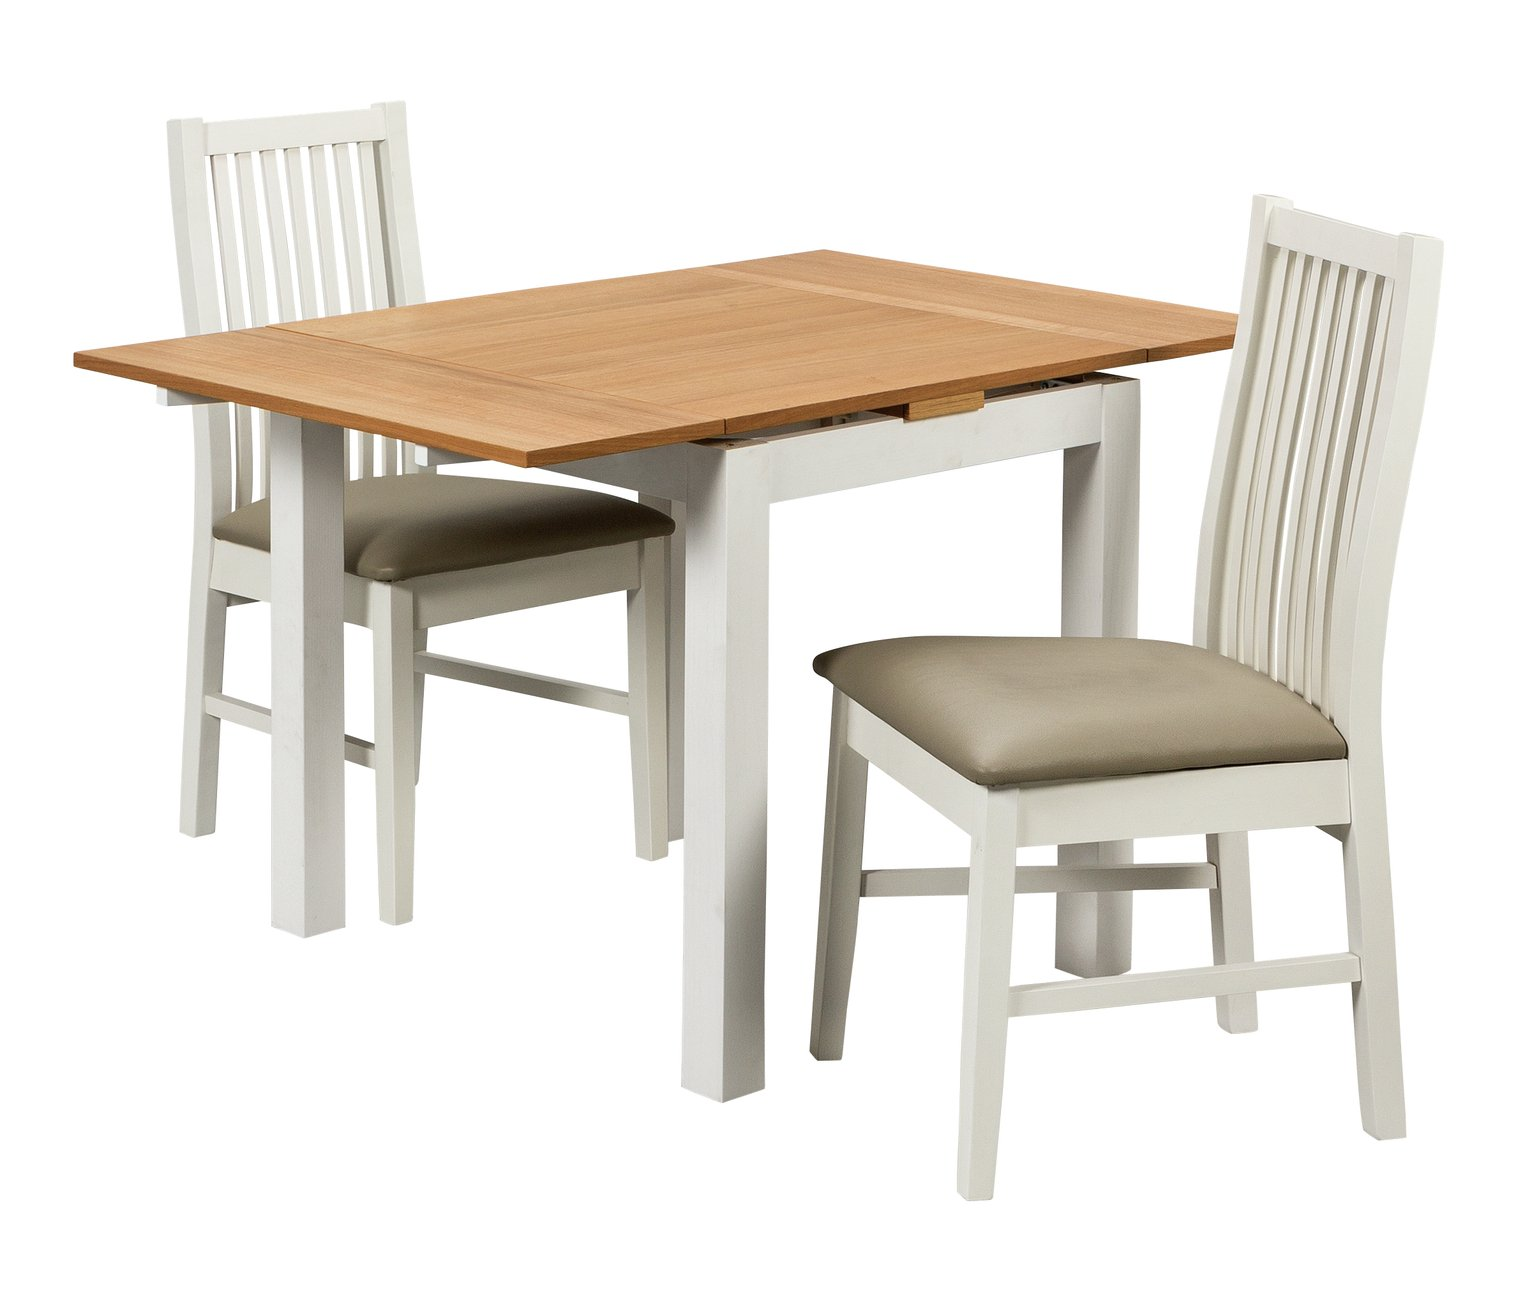 Argos Table And Chairs For 2: Argos Home Clifton Extendable Table And 2 Chairs Reviews